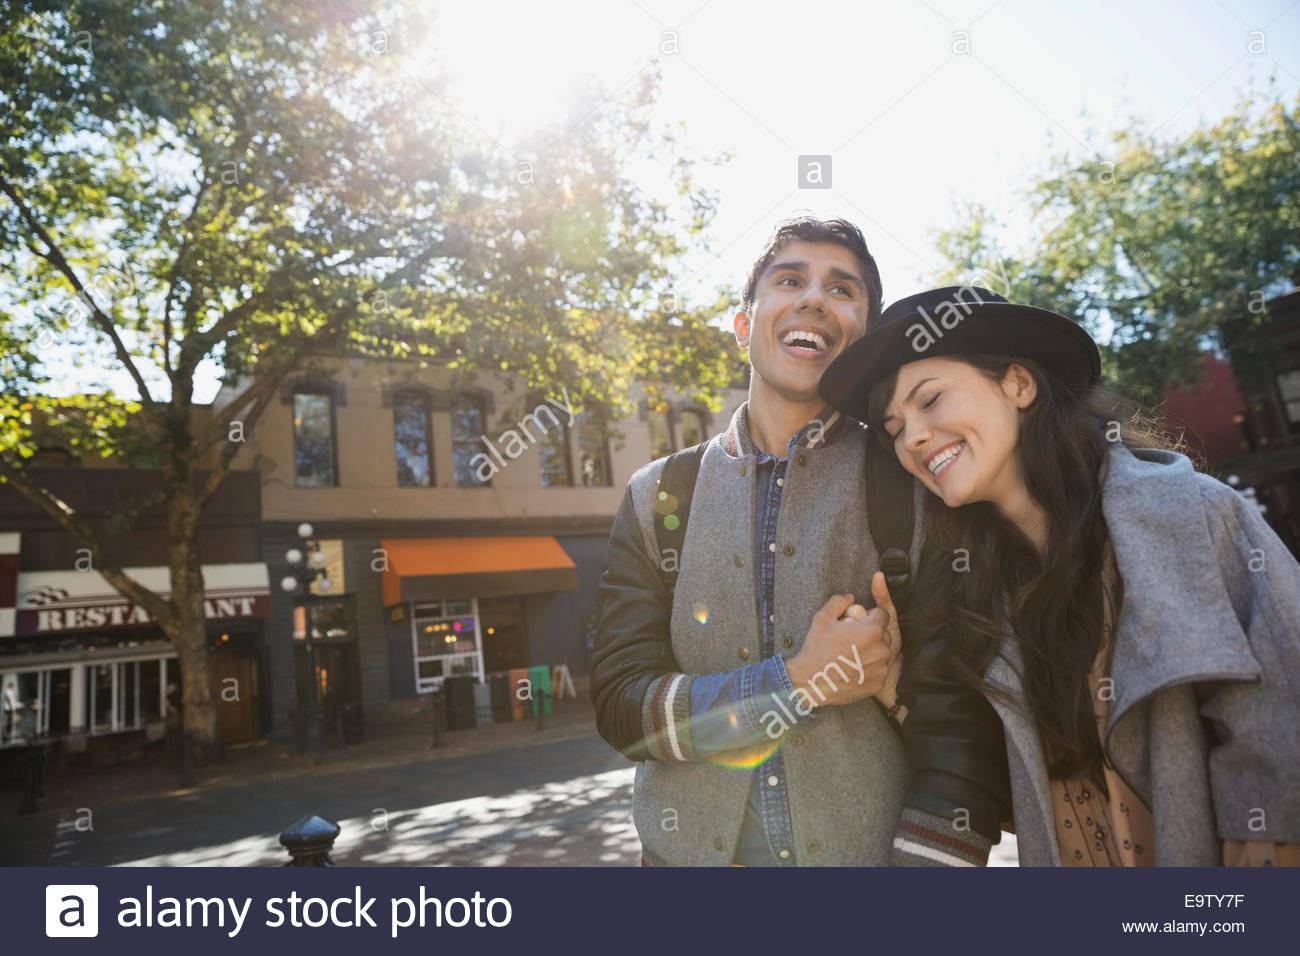 Couple laughing on sunny urban street Photo Stock